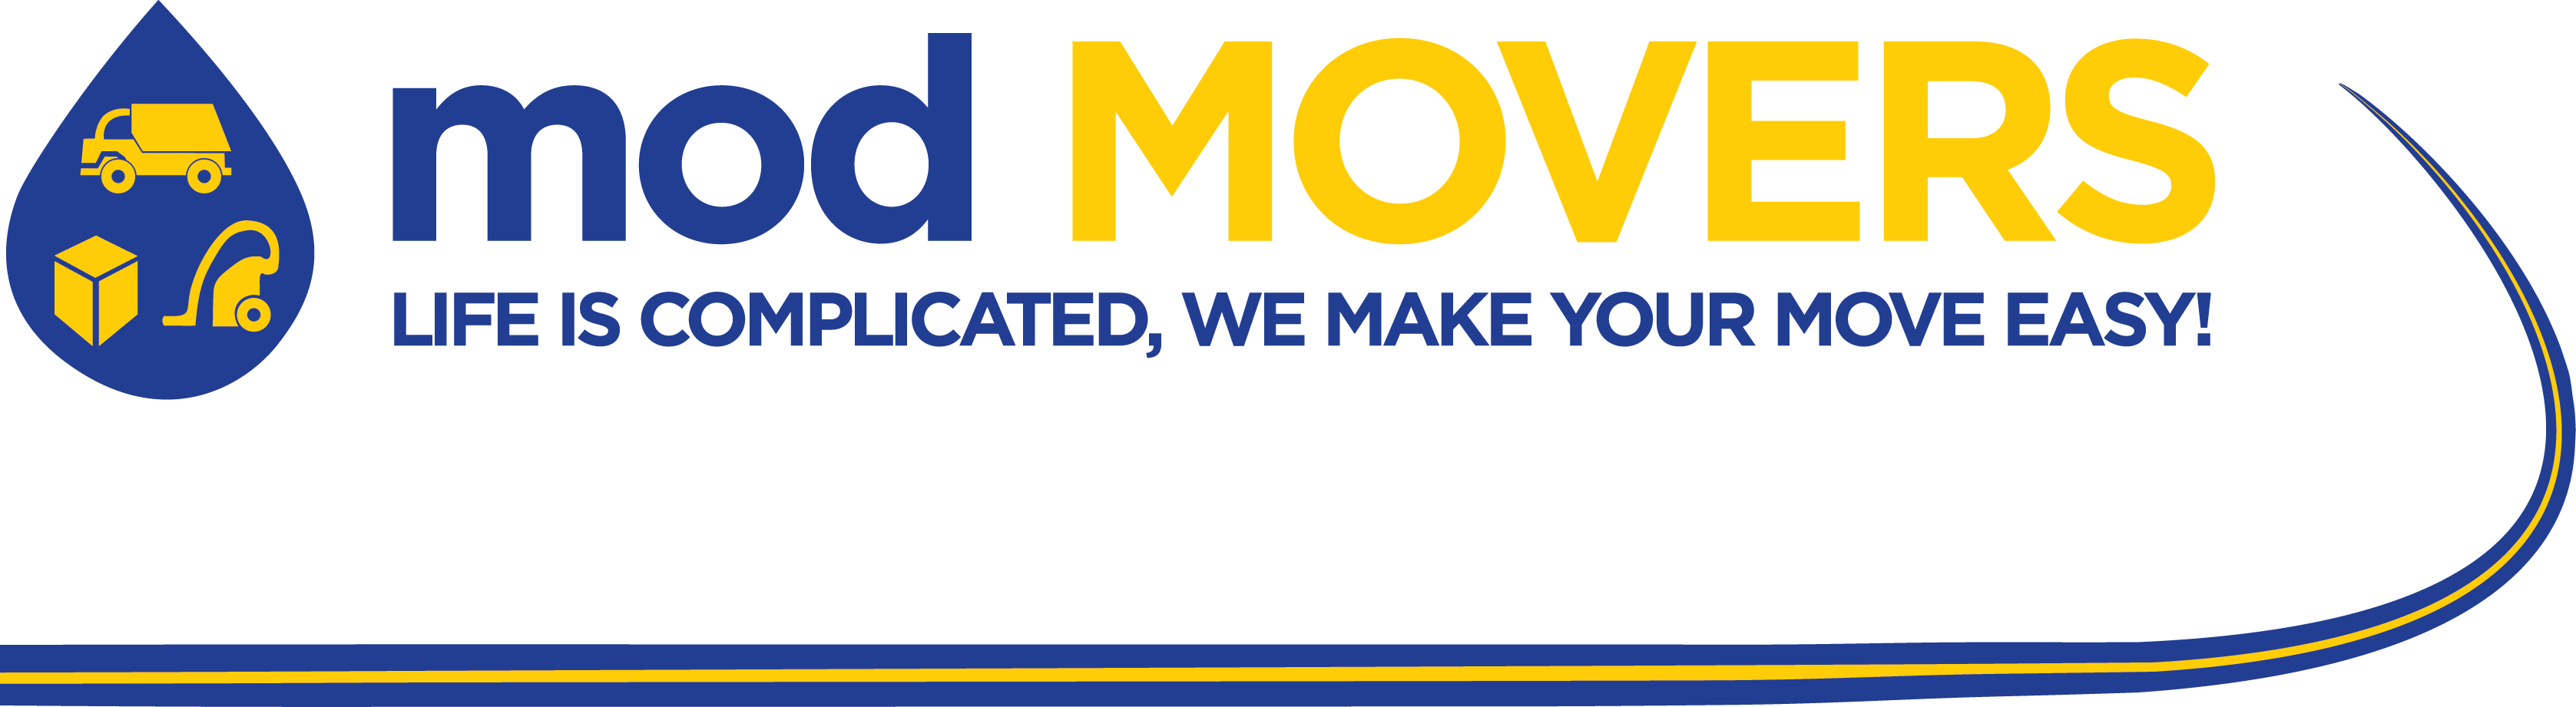 Mod MOVERS Partners With Monterey Firefighter's Association Local 3707 To Provide Assistance To Victims Of Camp Fire In Butte County 5